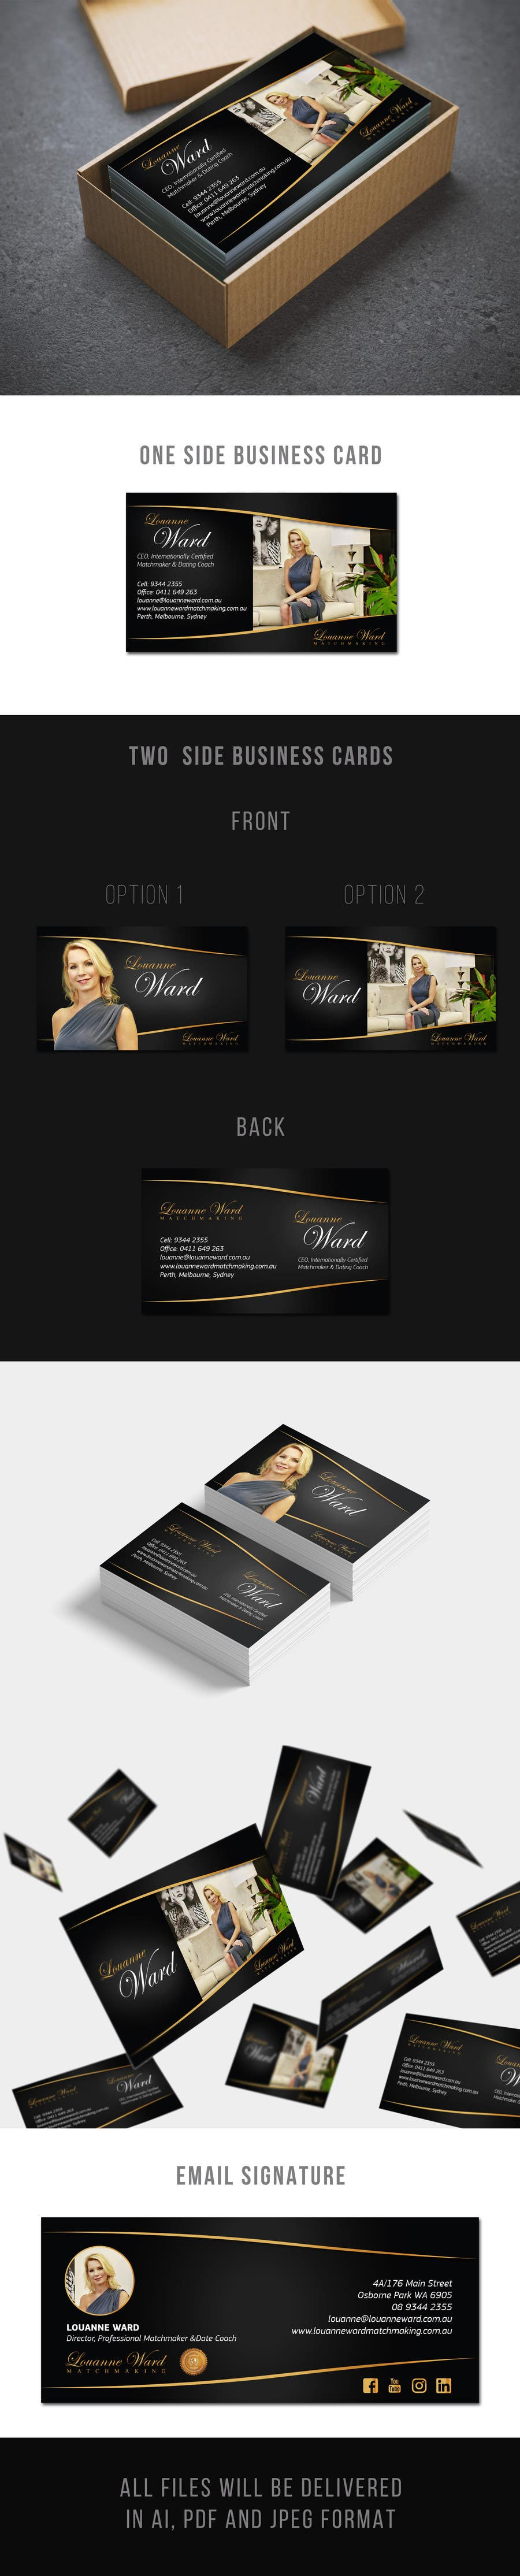 Entry 24 By Glazaropoulos For 2 Ebook Covers Business Card And